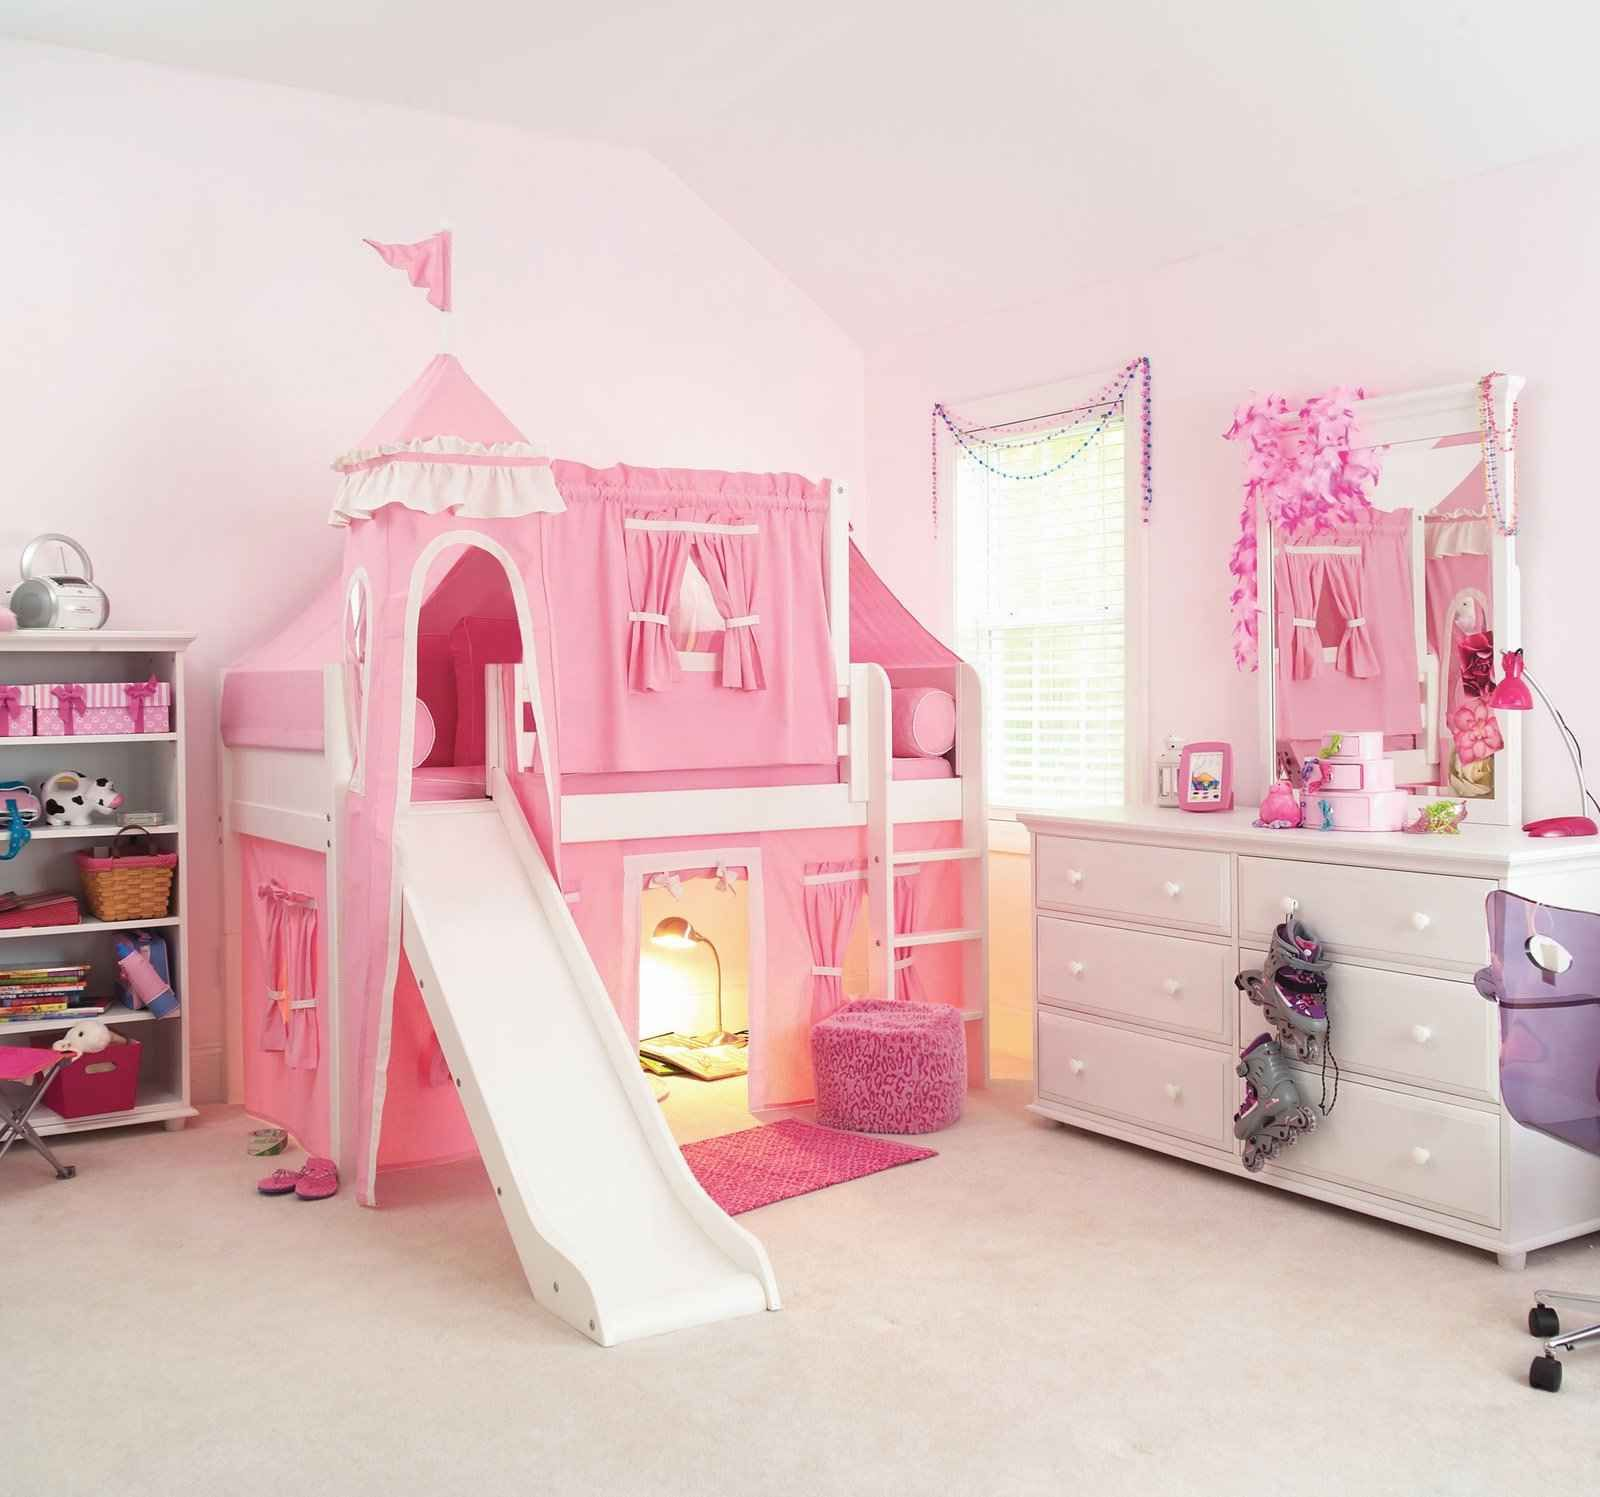 Awesome Bunk Beds For Girls Deluxe Loft Castle Beds For Girls